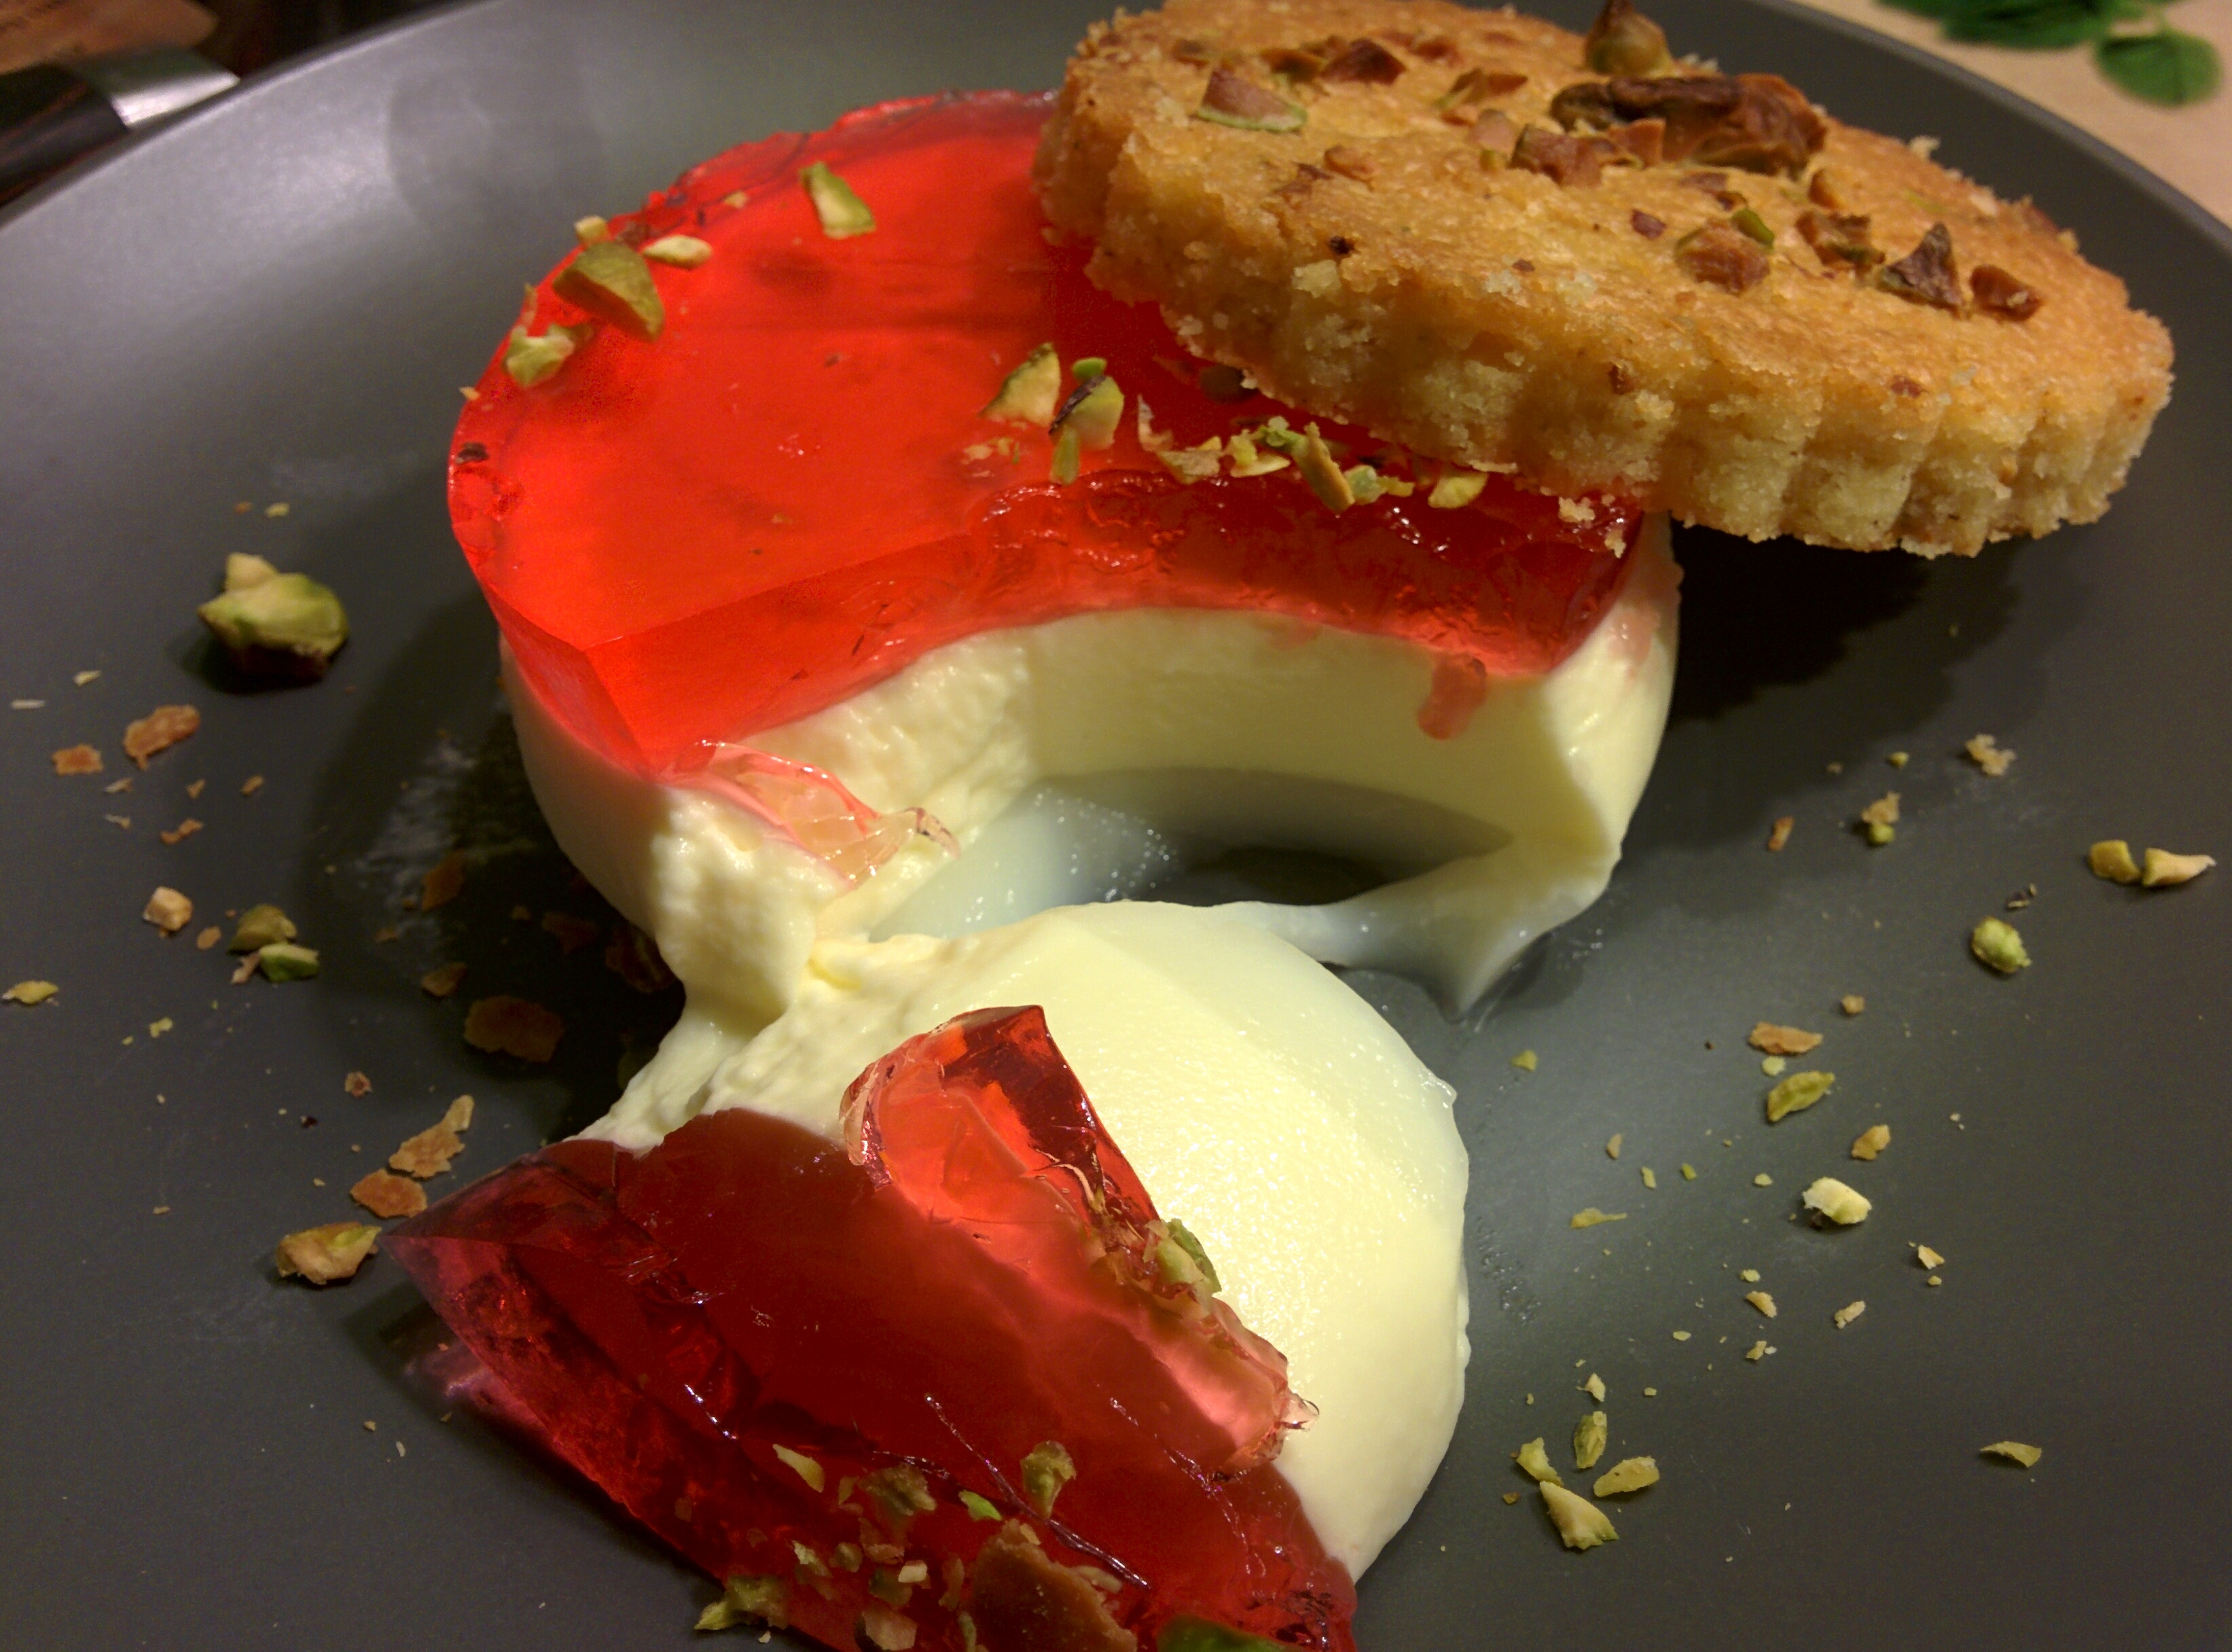 Rose Panna cotta with rose jelly and a cardomom-pistachio biscuit